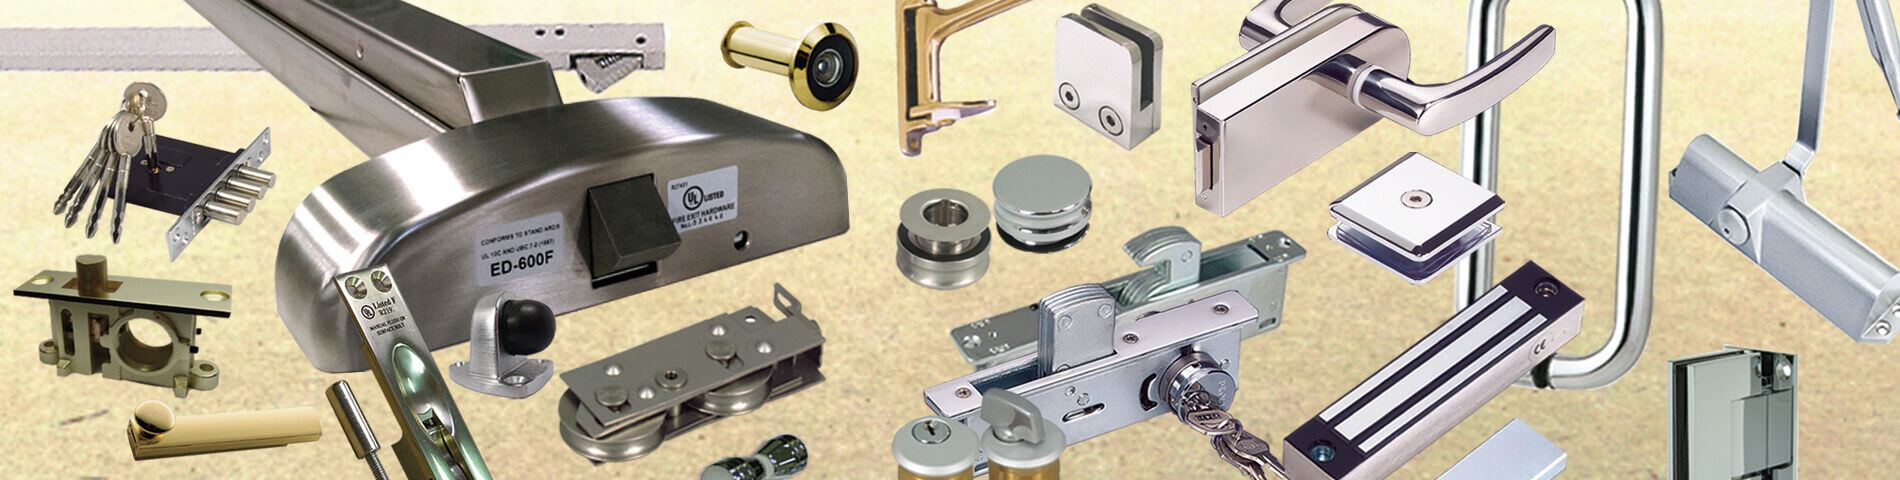 Building Hardware Supplier